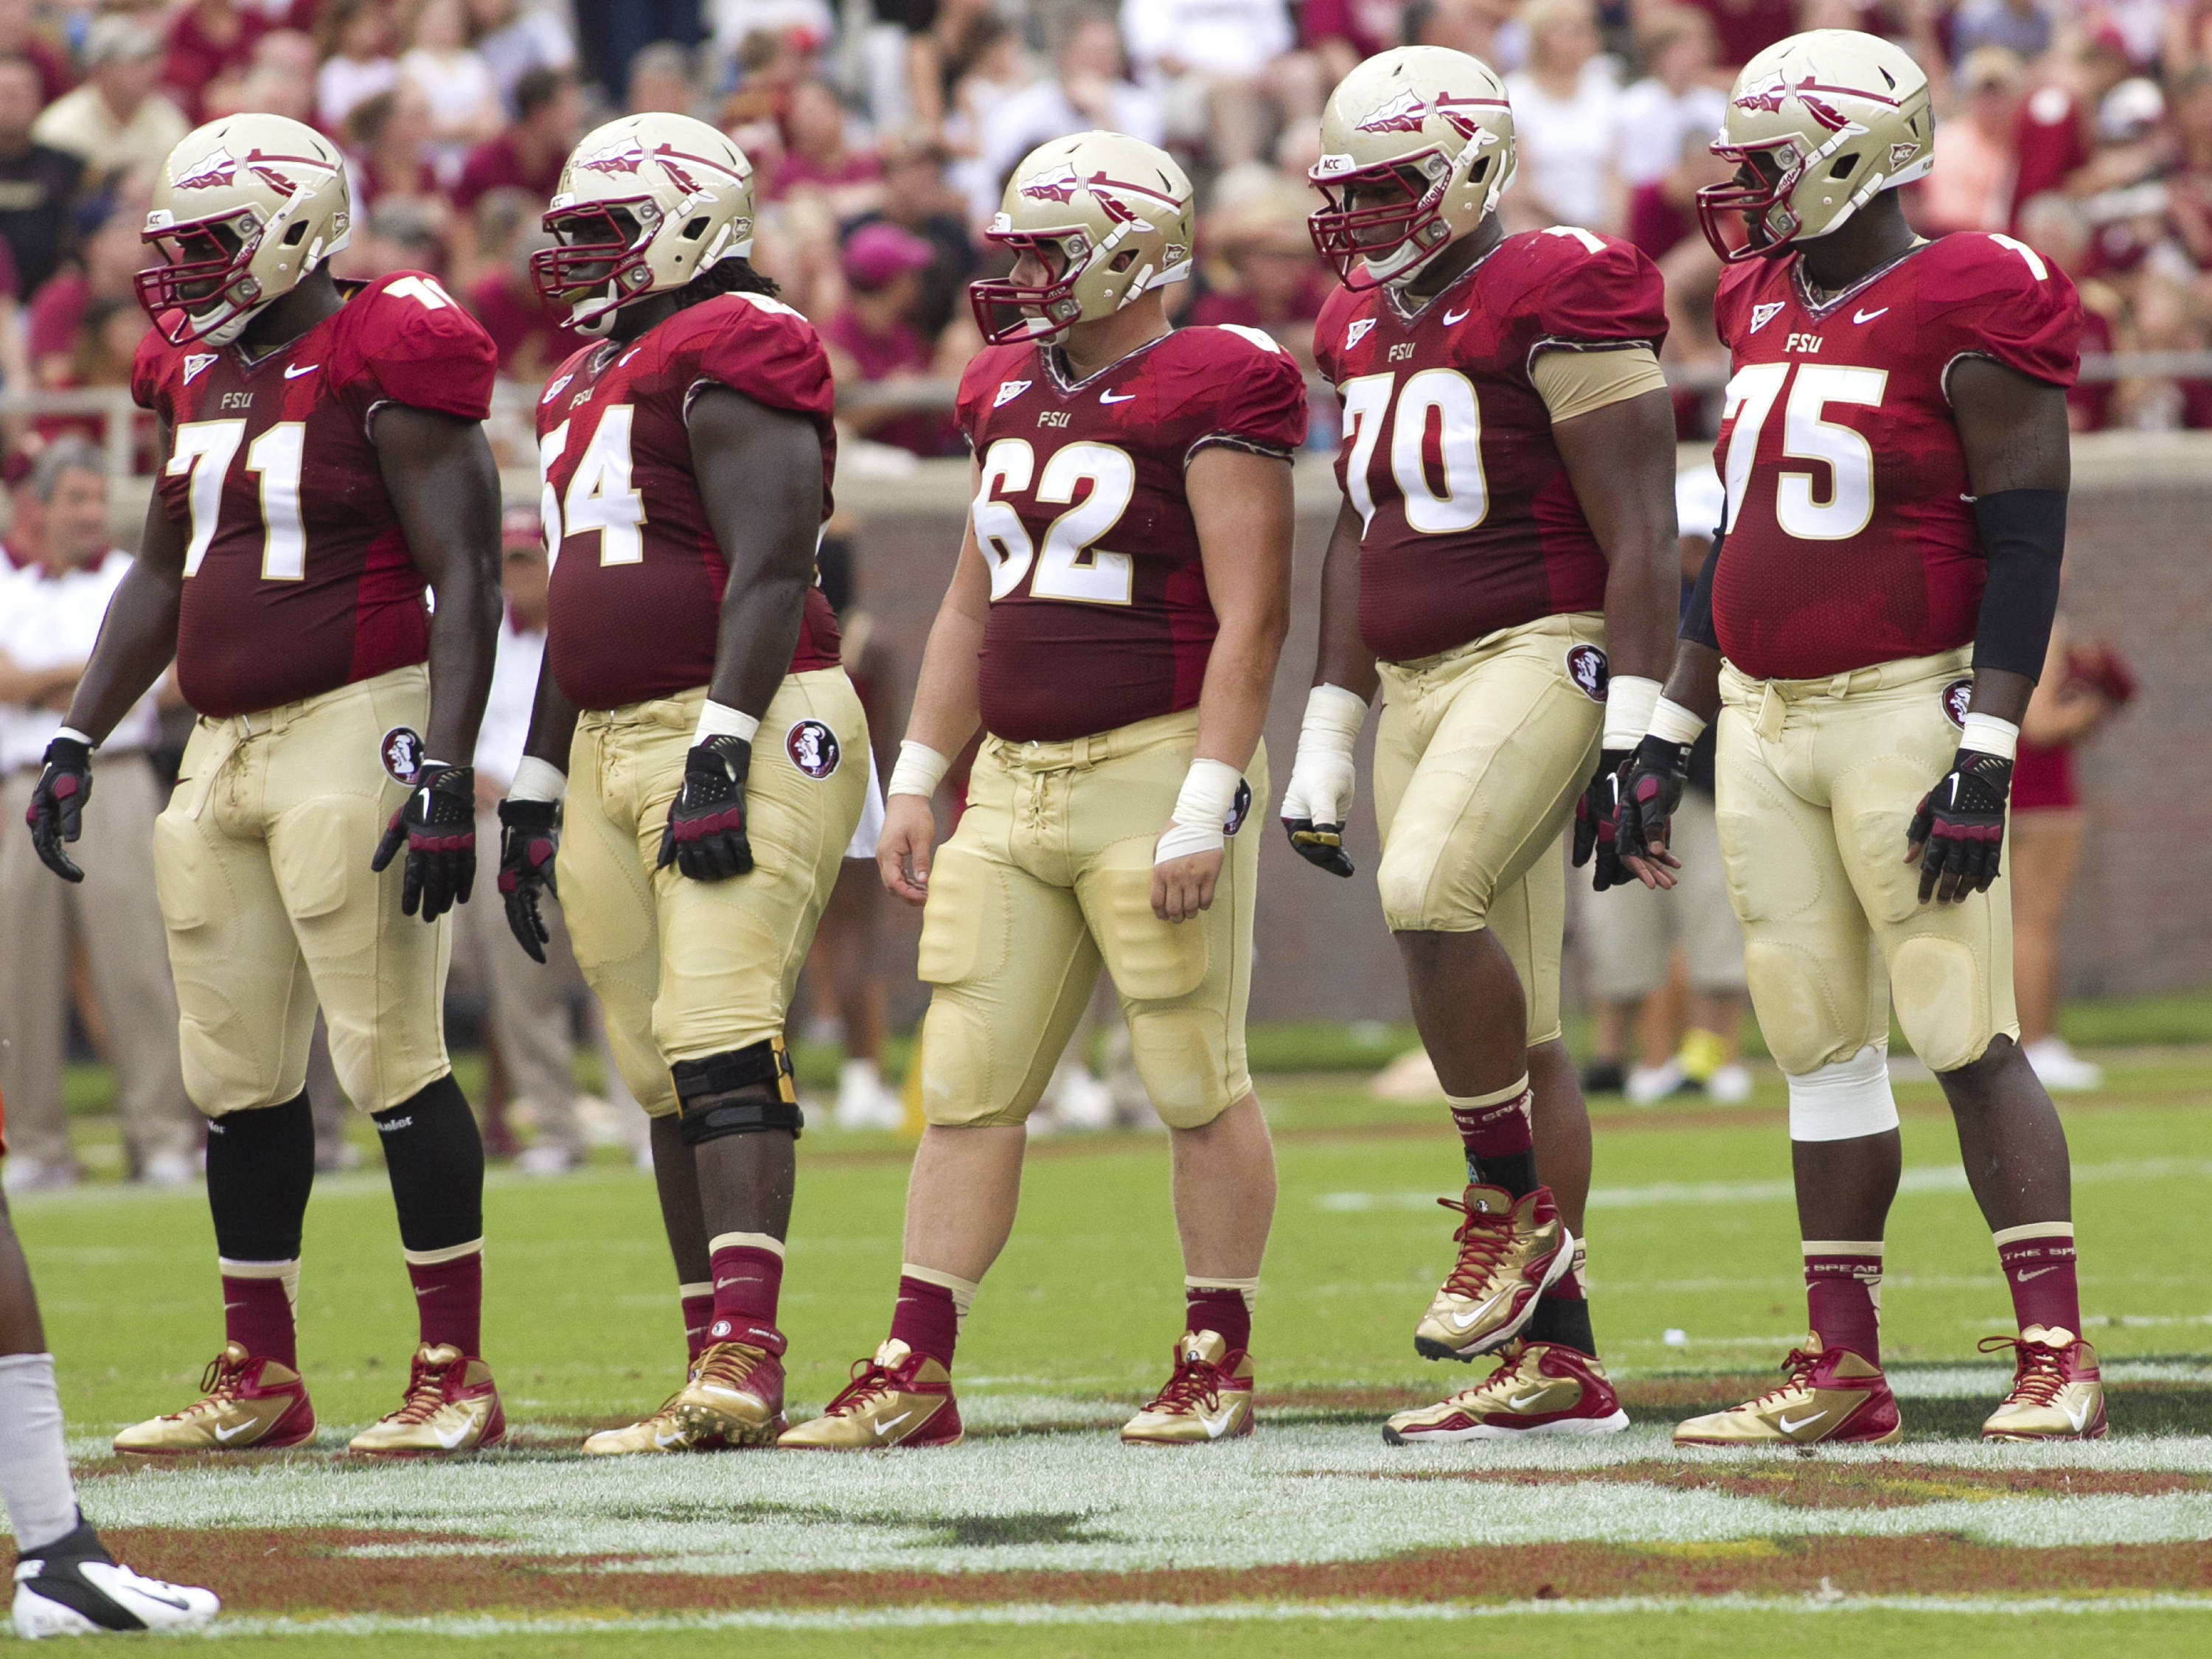 Offensive Live, Menelik Watson (71), Tre' Jackson (54), Austin Barron (62), Josue Matias (70), Cameron Erving (75),  FSU vs Savannah State, 9/8/12 (Photo by Steve Musco)